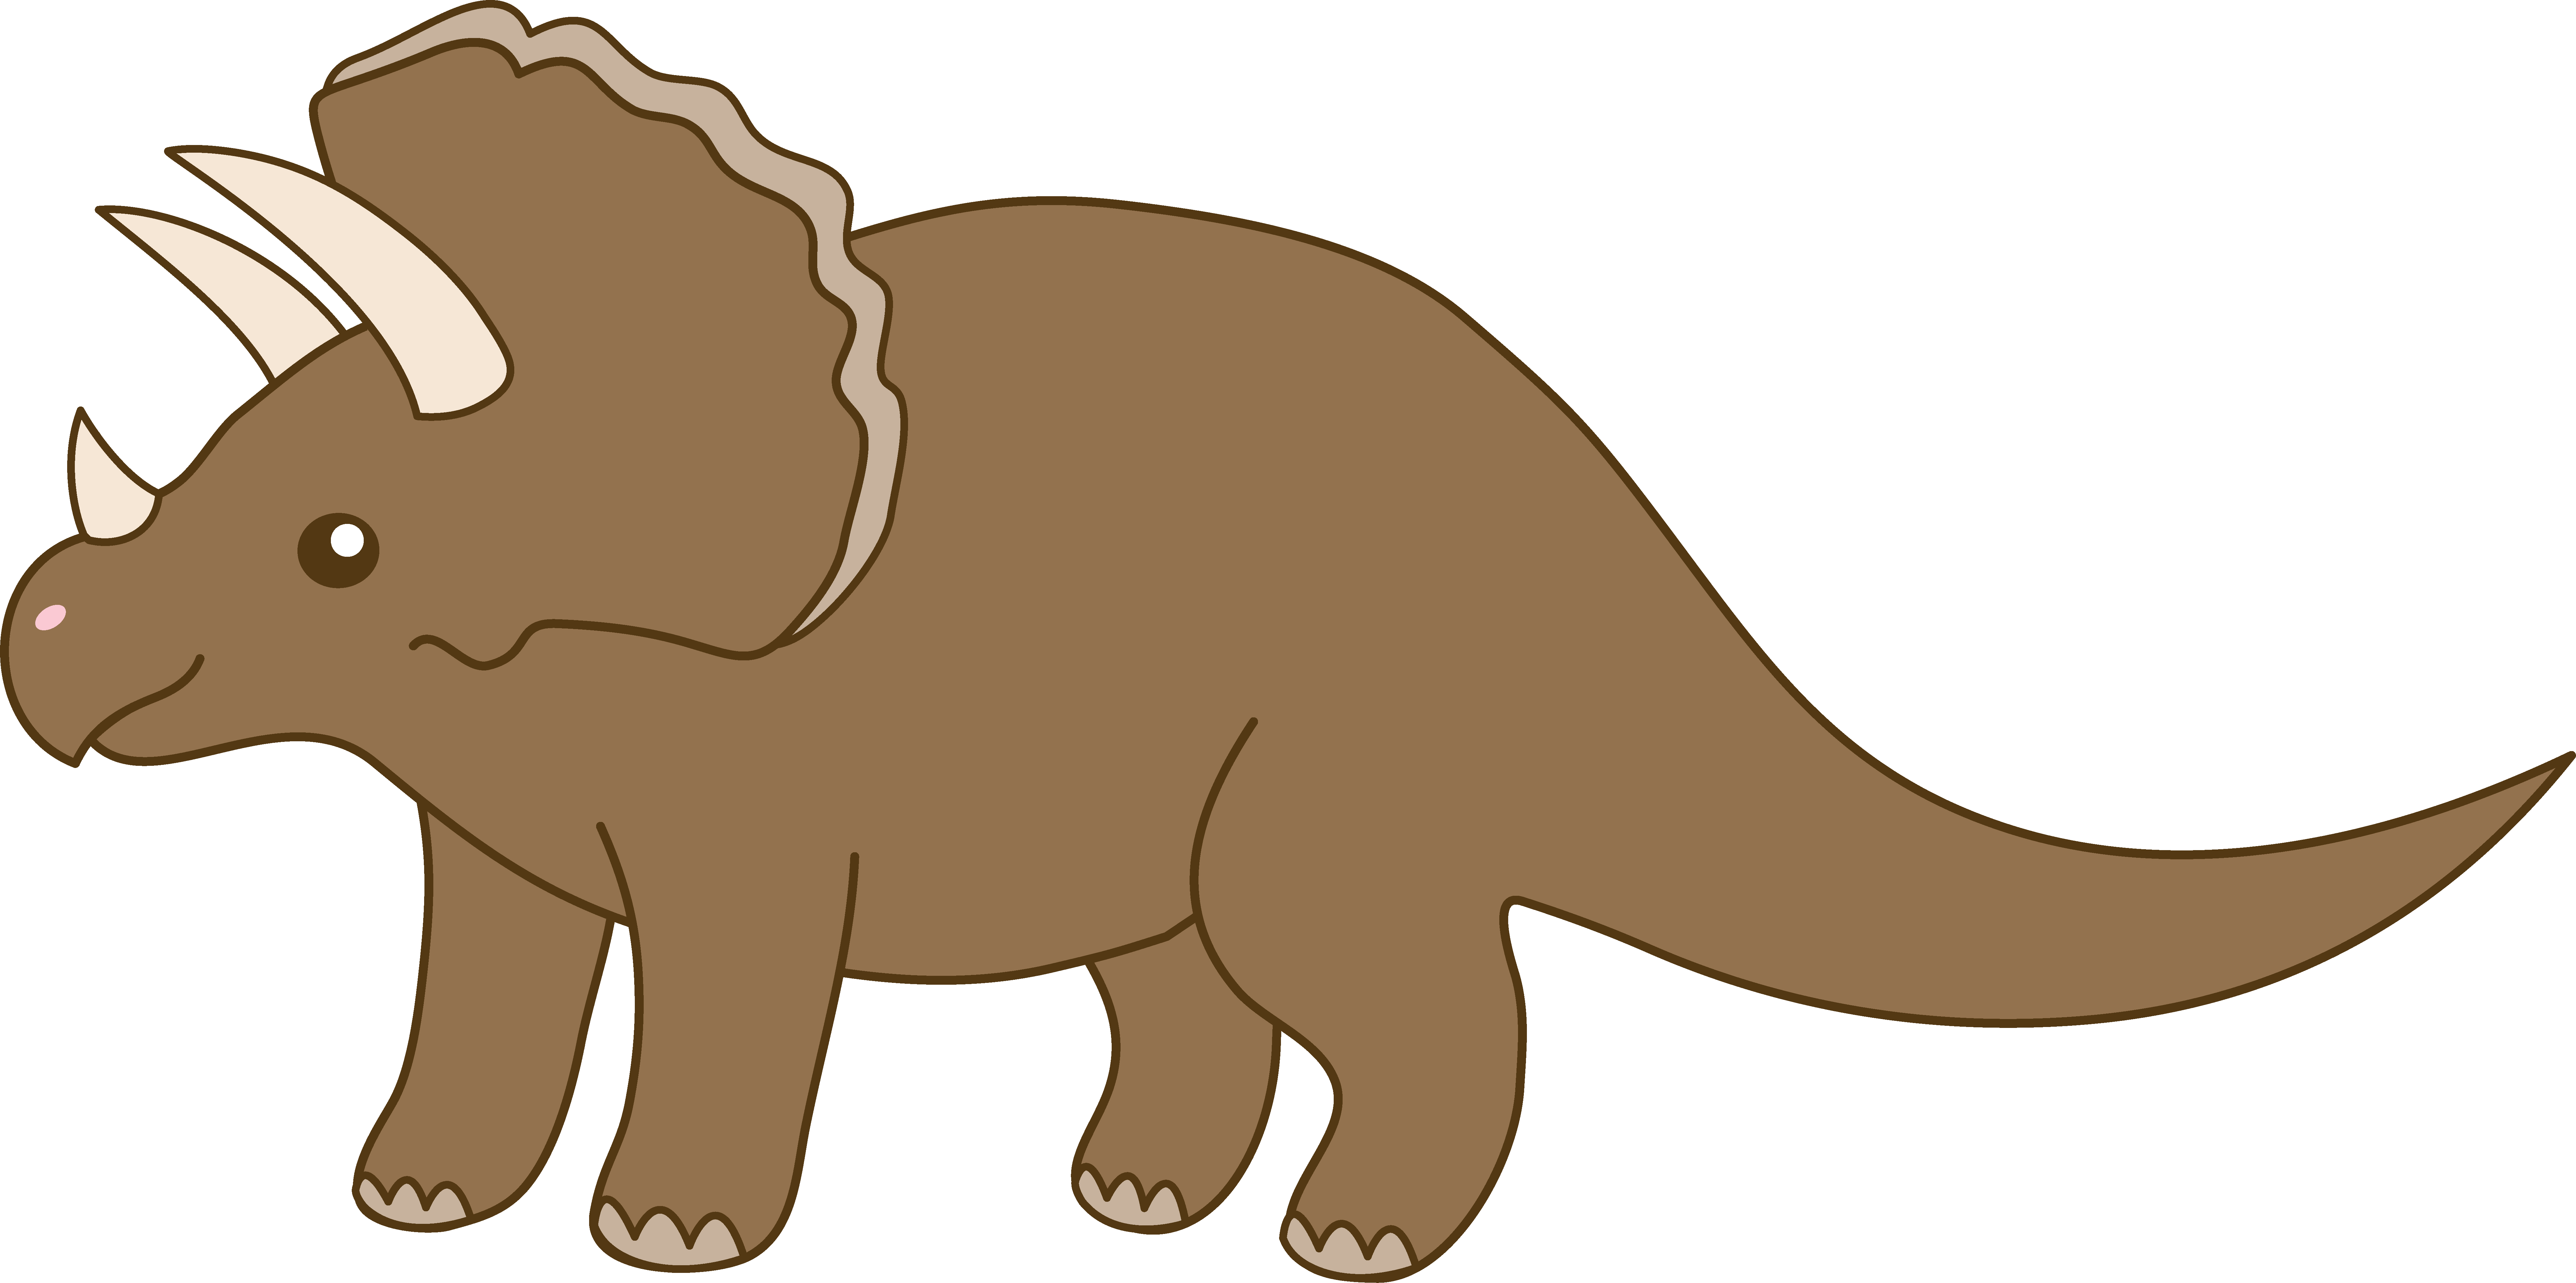 Dinosaur clip art free for kids free clipart images.